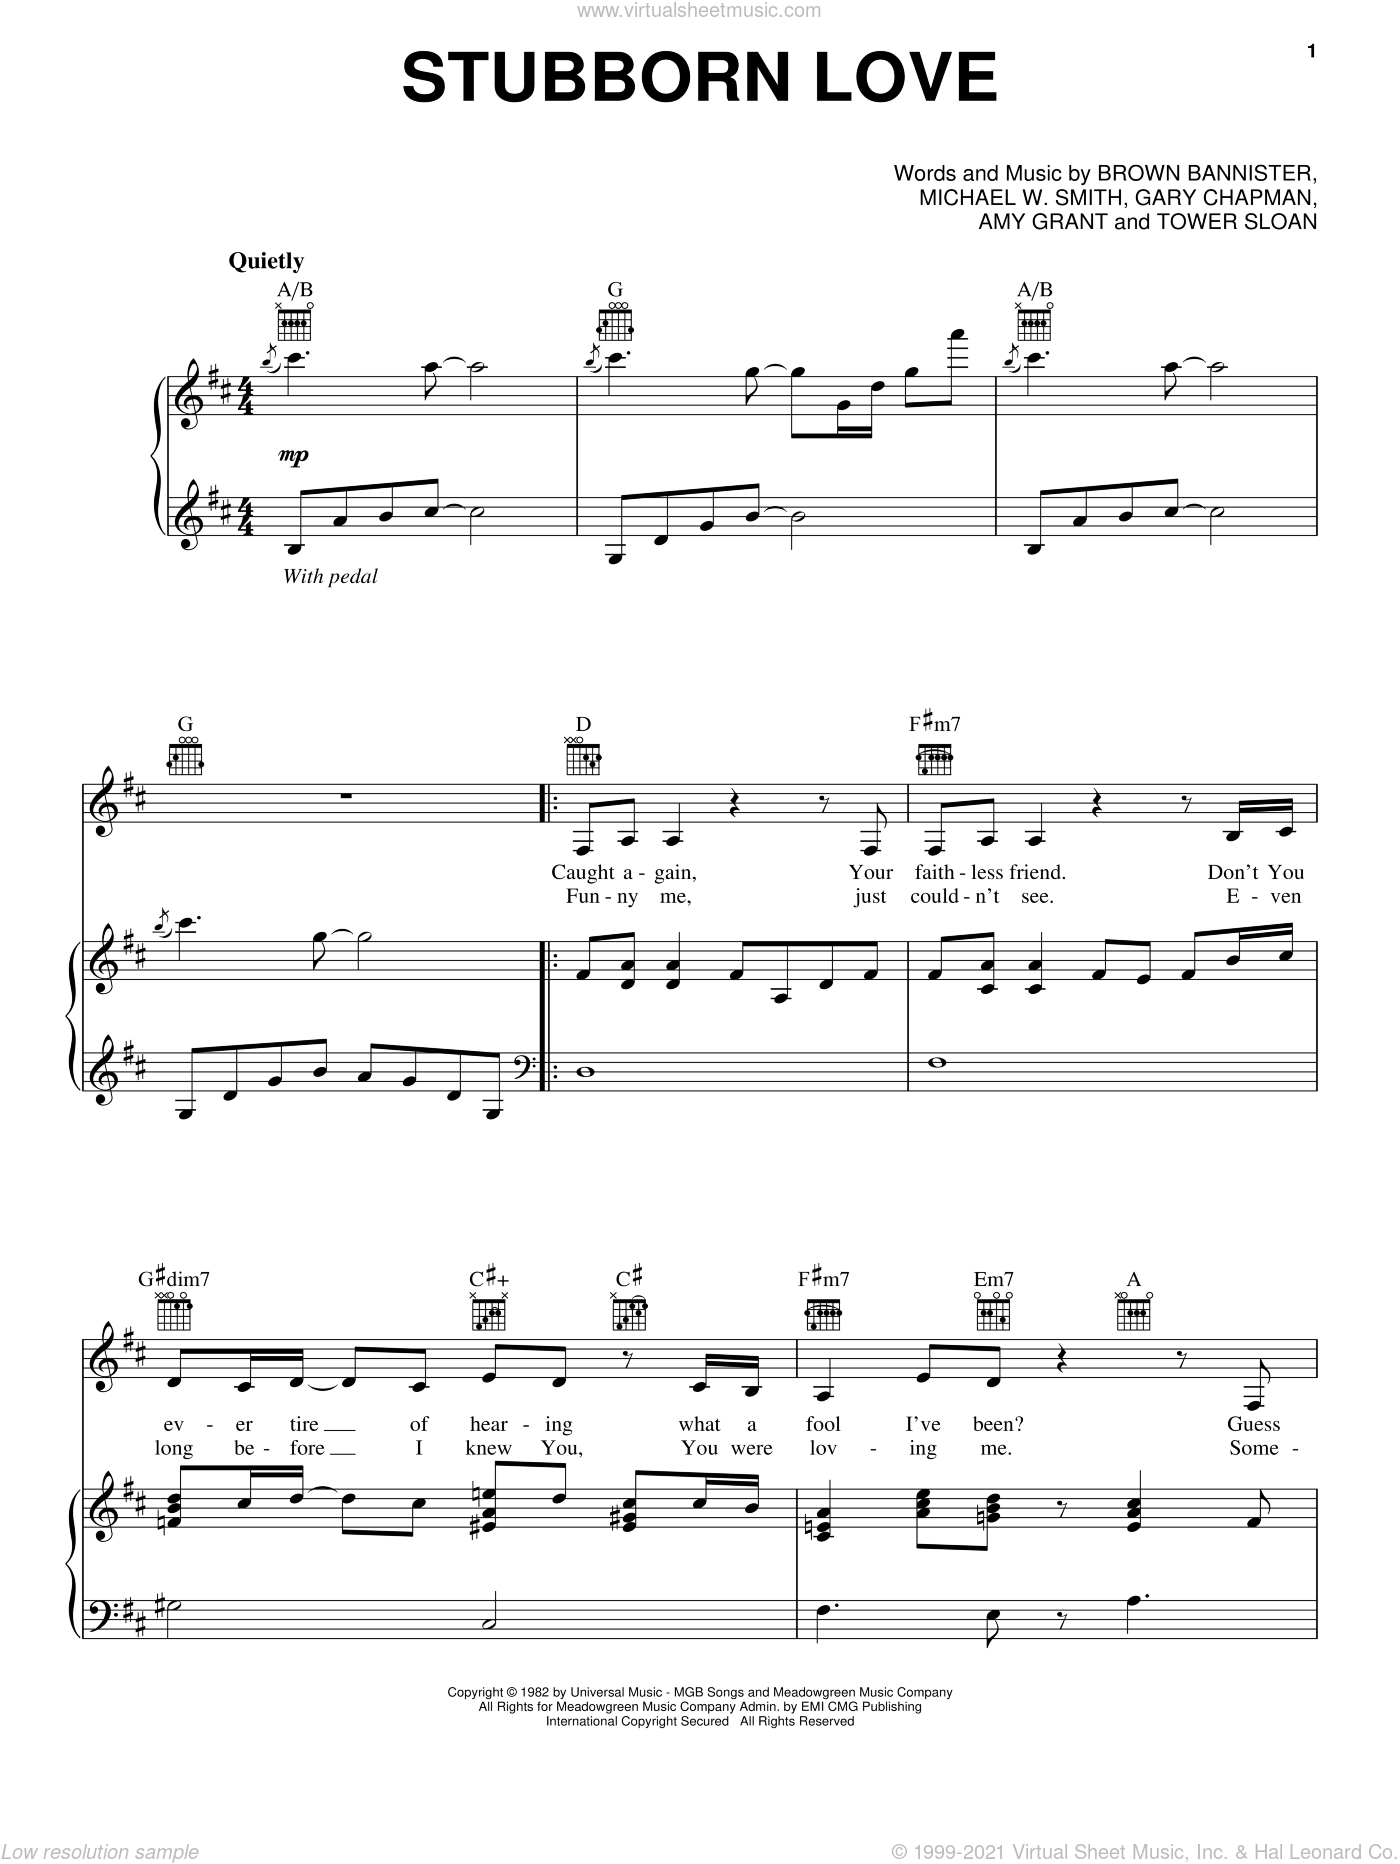 Stubborn Love sheet music for voice, piano or guitar by Michael W. Smith, Amy Grant, Brown Bannister, Gary Chapman and Sloan Towner, intermediate skill level